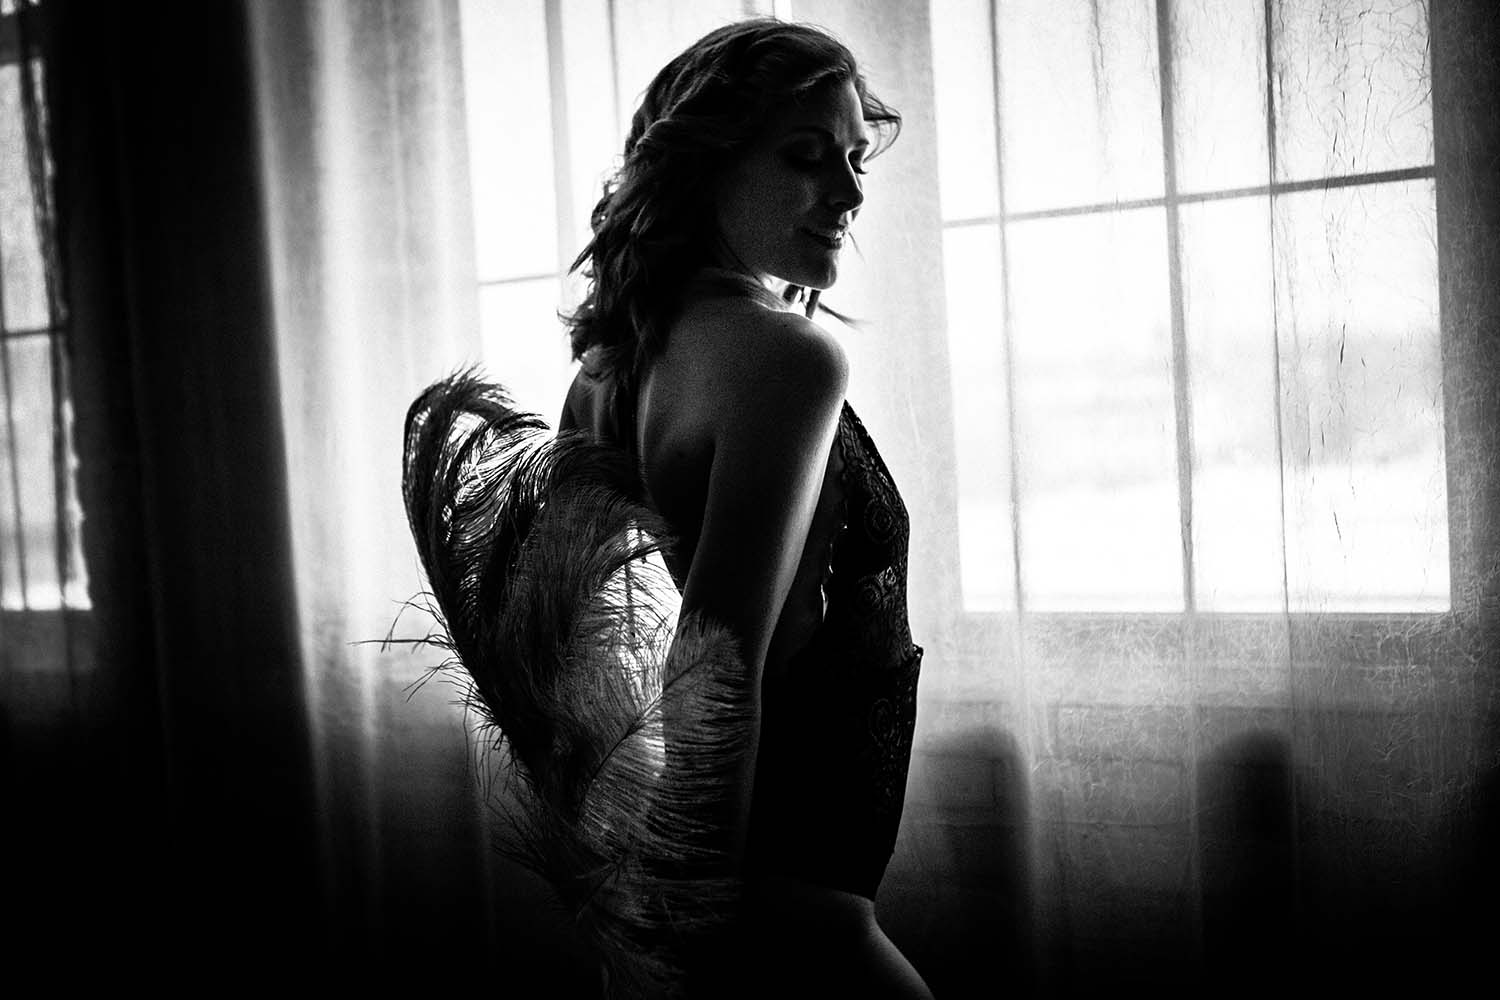 Natalie, Woman, Black and White, Moody, Burlesque Fan, natural, window, light, Twin Cities; MN; Woman; Boudoir Photographers Minneapolis; Saint Paul; Photography; sexy; adult; bedroom; photos; portraits; intimate; Midwest; classy; boudoire; grooms gift; anniversary; self love